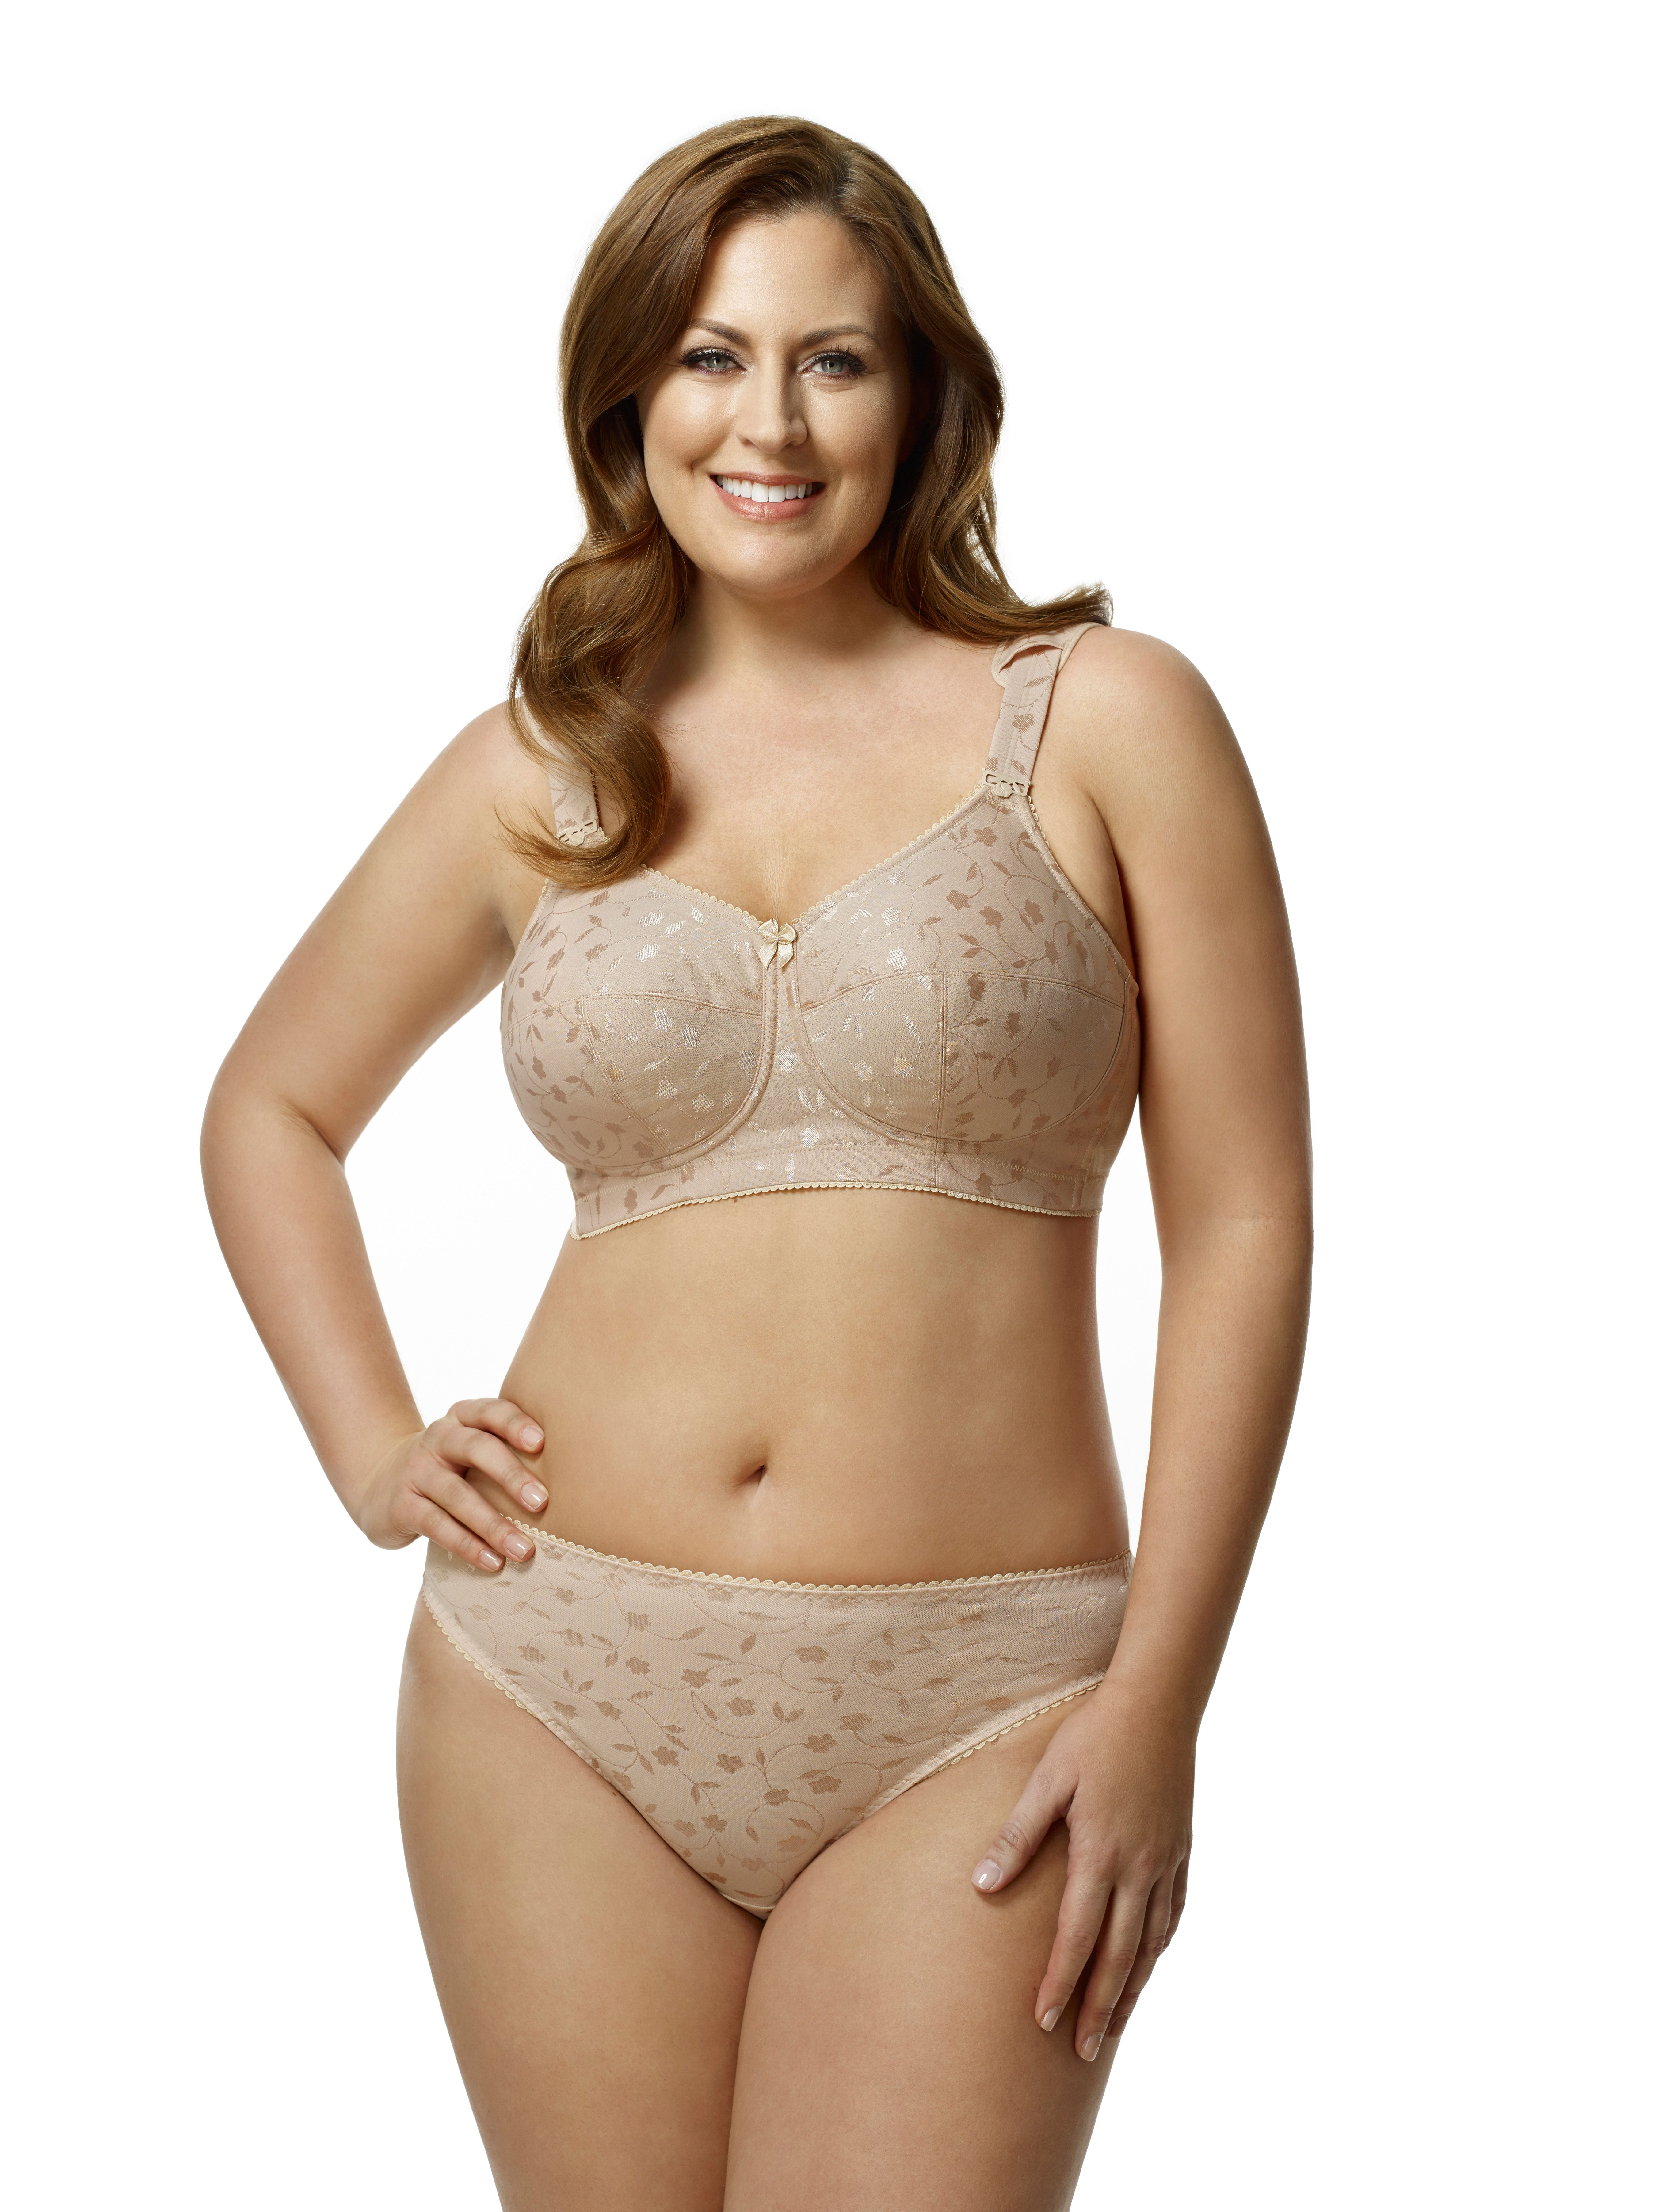 a99ec9dce Jacquard Softcup in Nude, sizes 34 - 52, F - N | Elila Collection ...